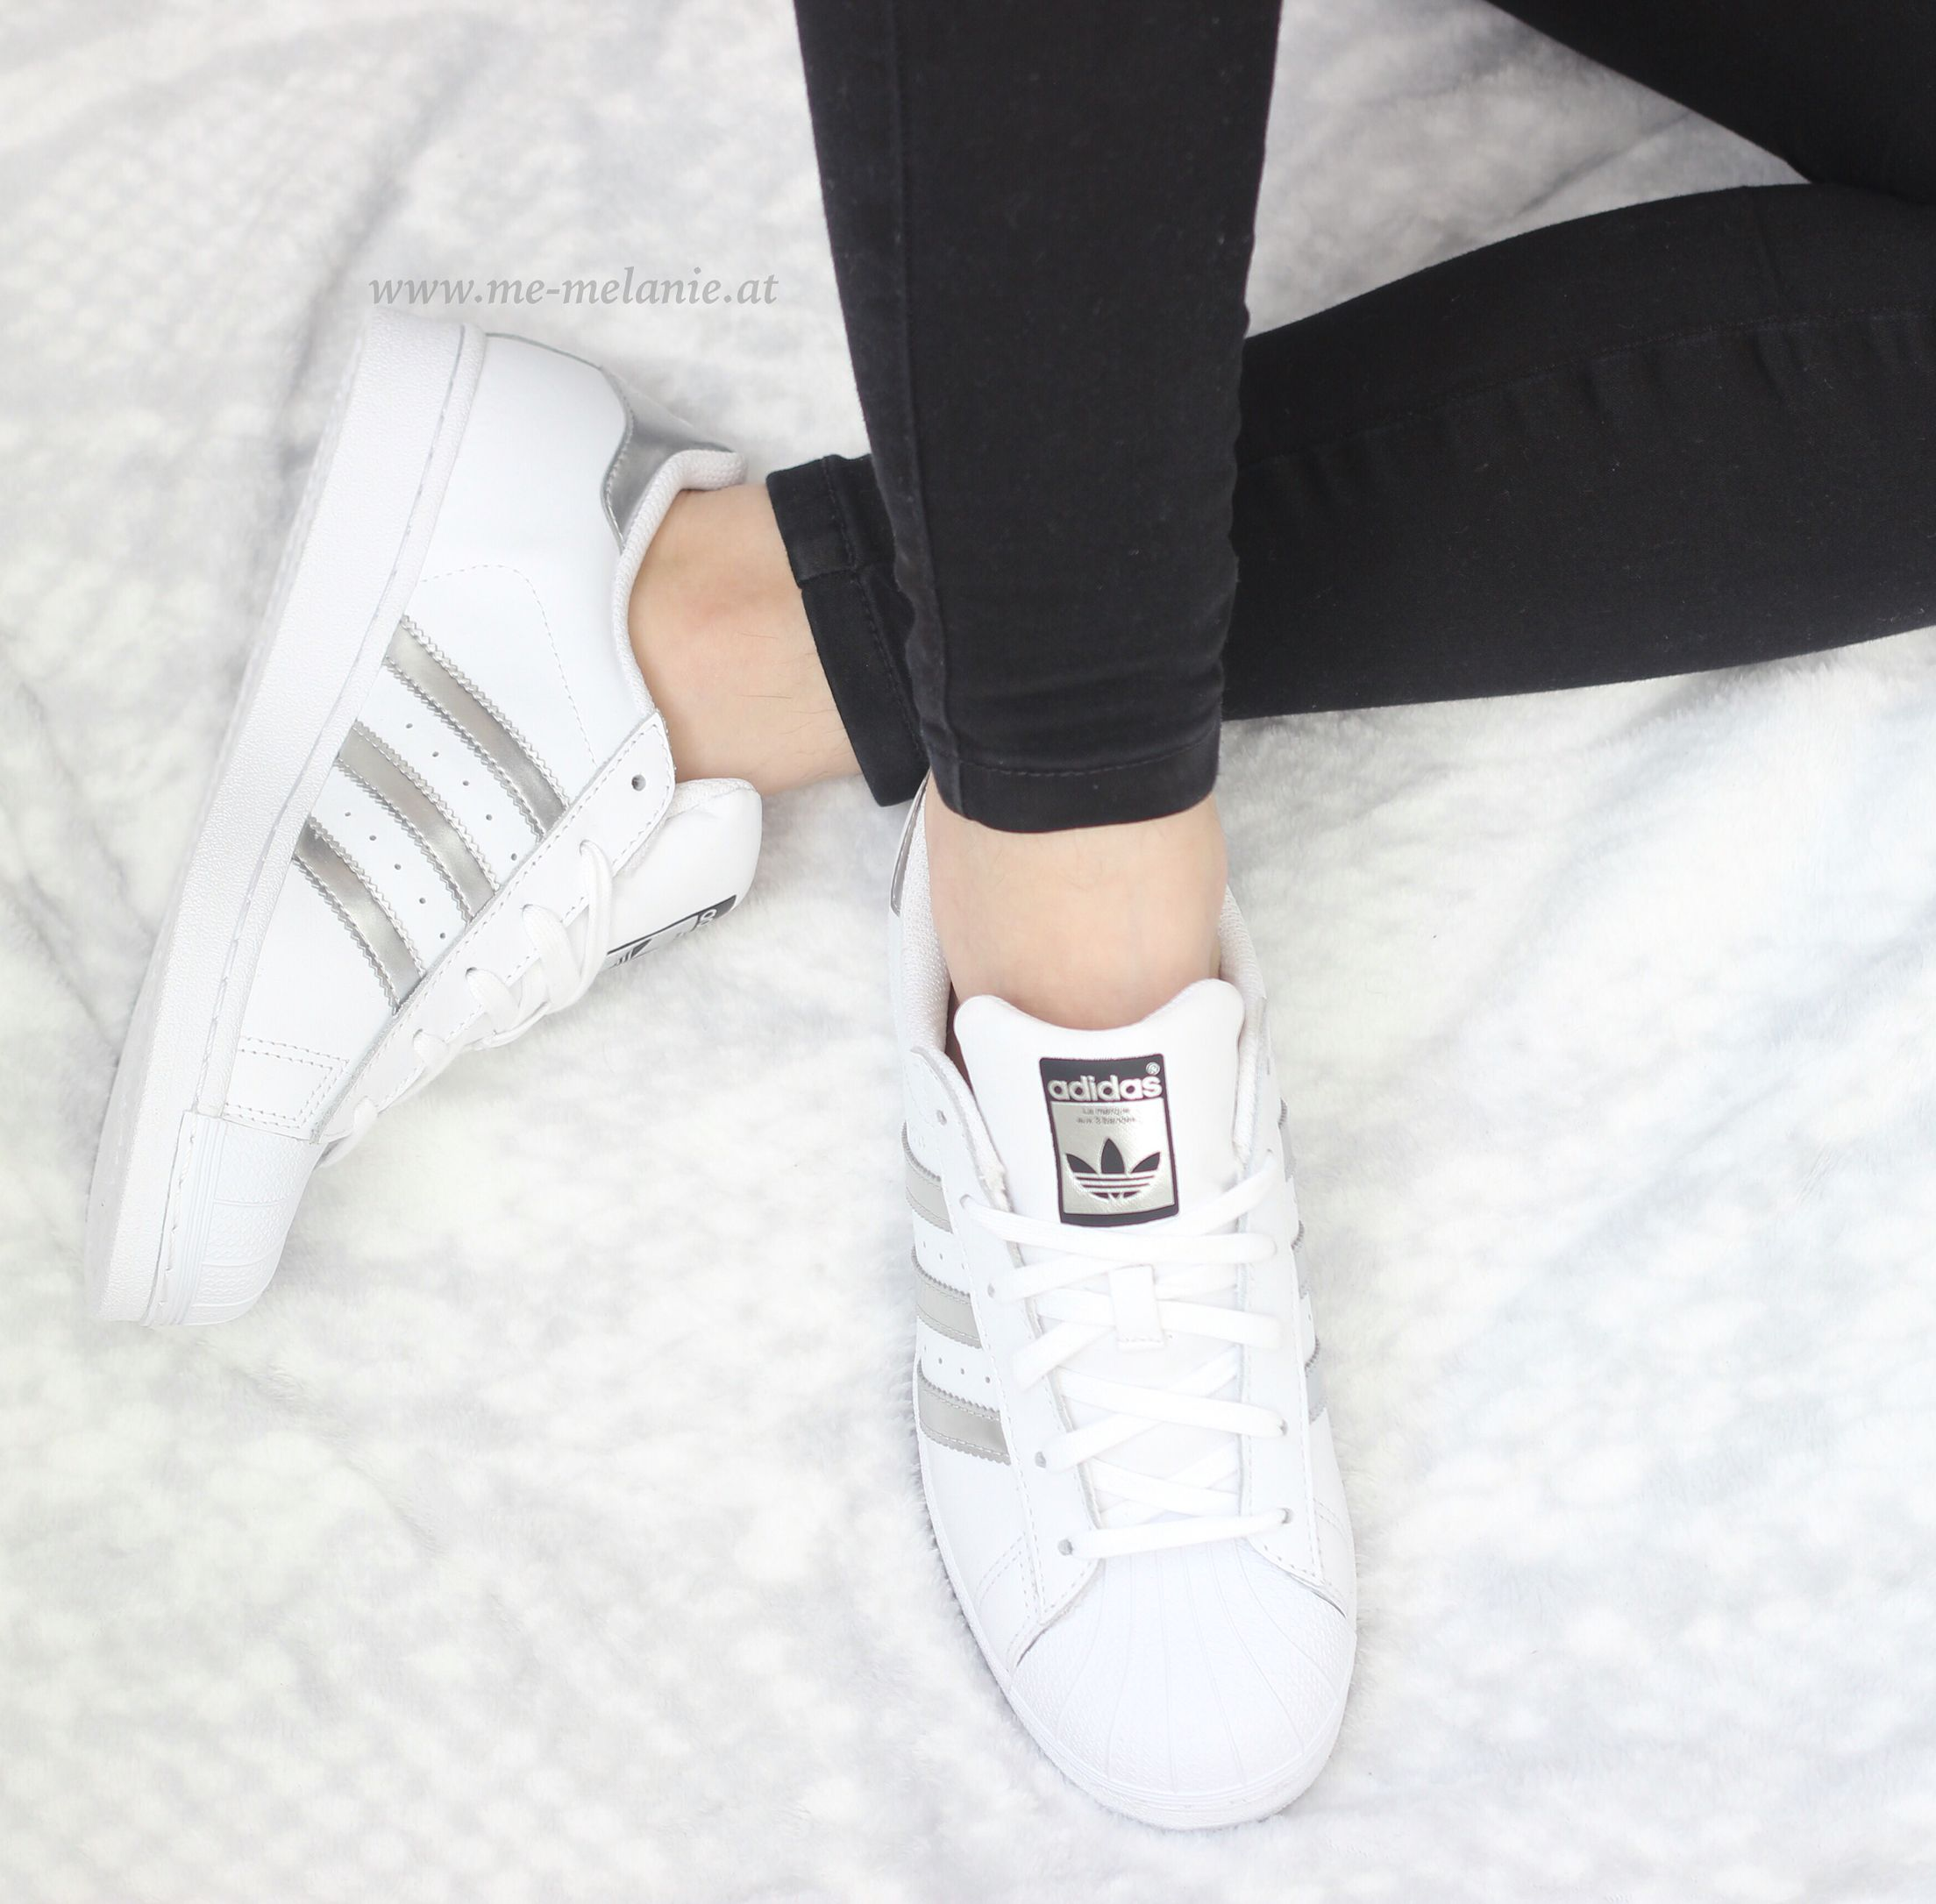 adidas superstar slip on shoes white adidas superstar rose gold tip manicure